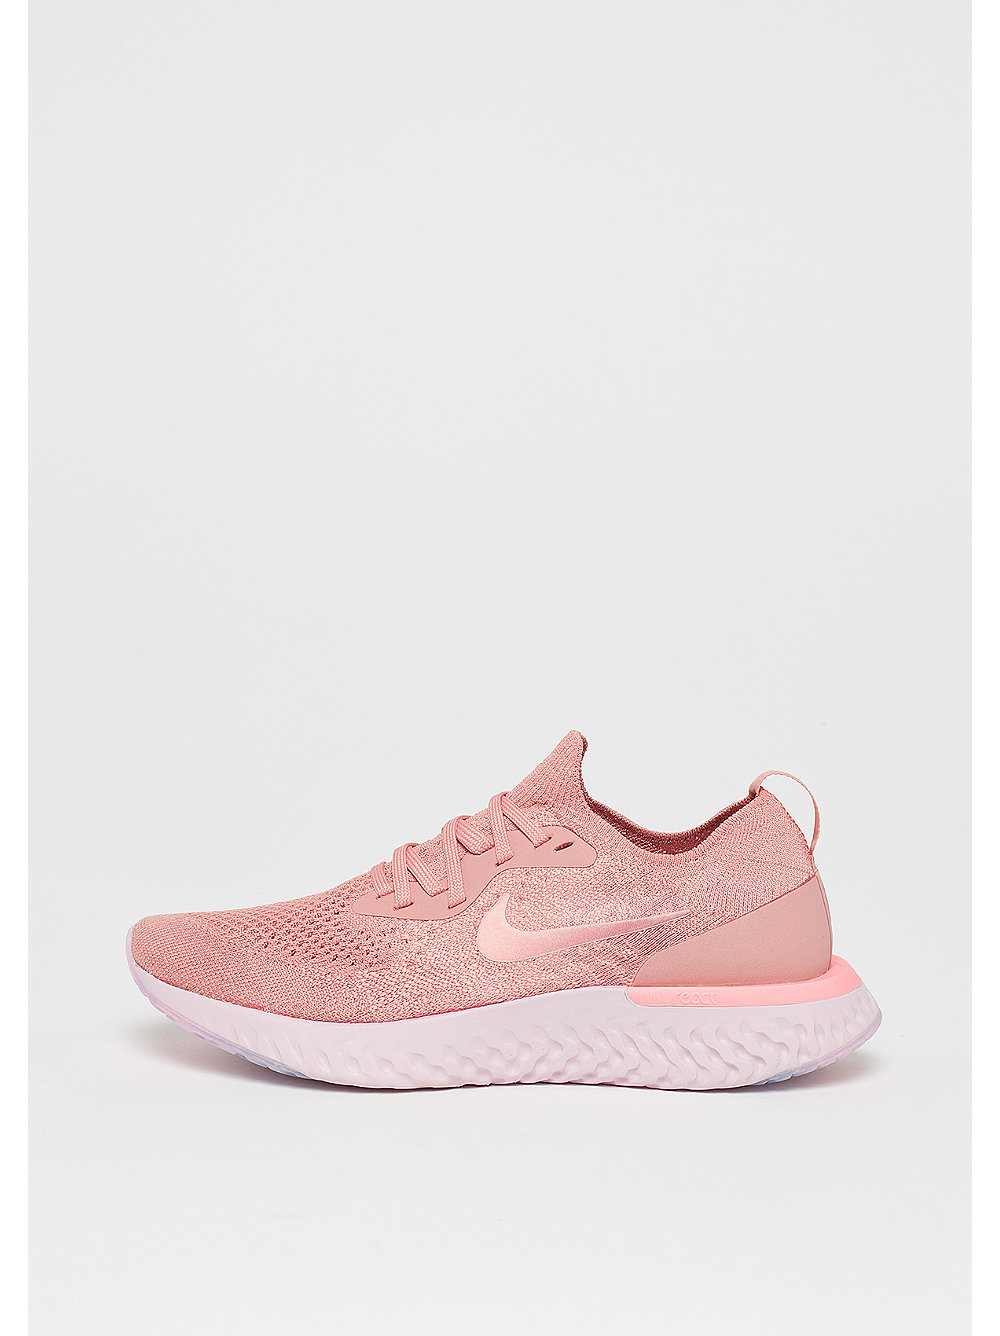 Wmns Epic React Flyknit rust pink/pink tint-tro...